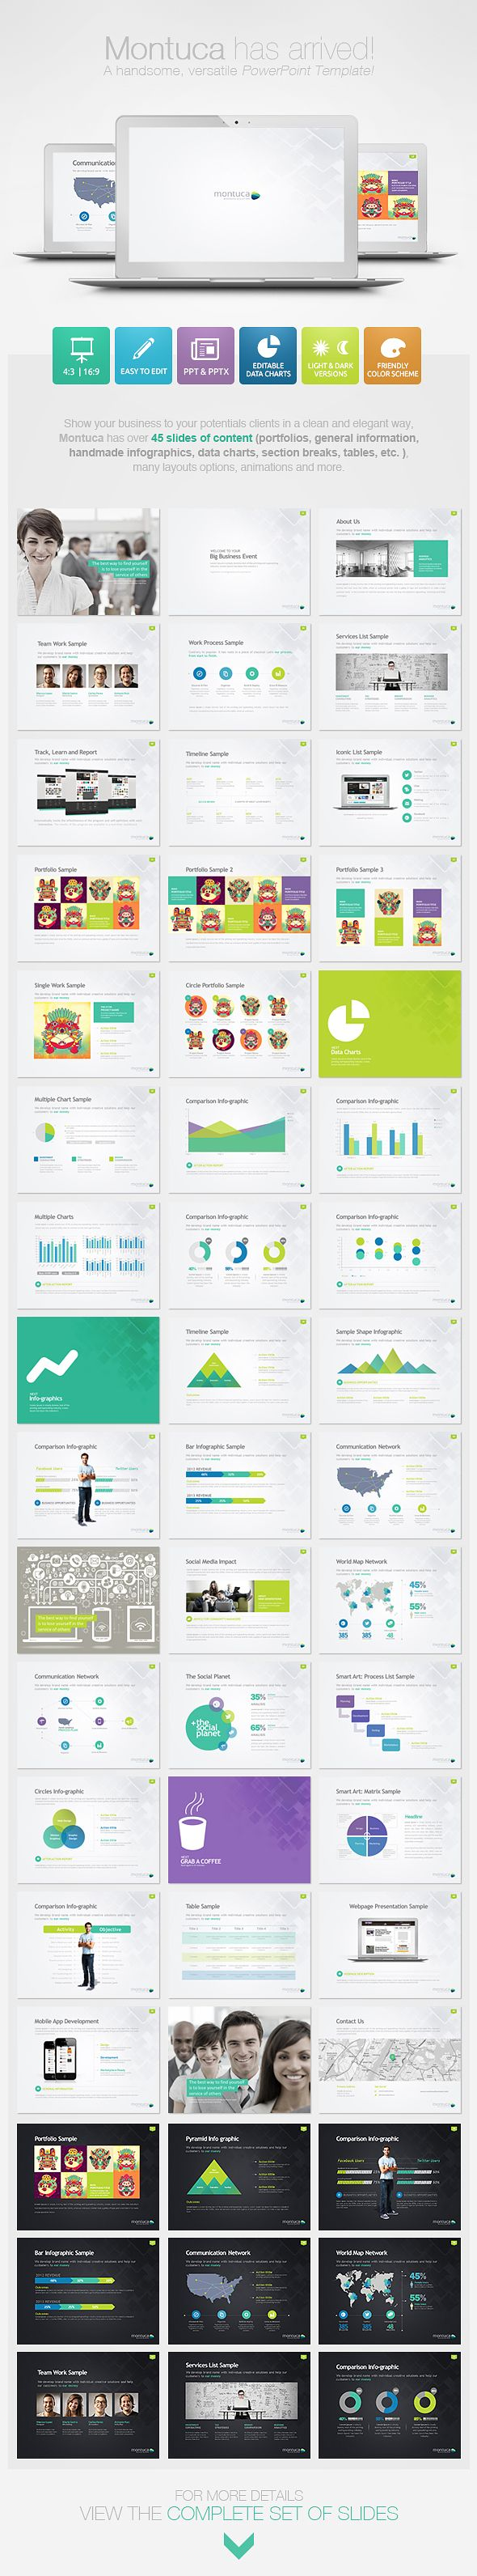 Montuca Powerpoint Presentation Template by Eduardo Mejia, via Behance